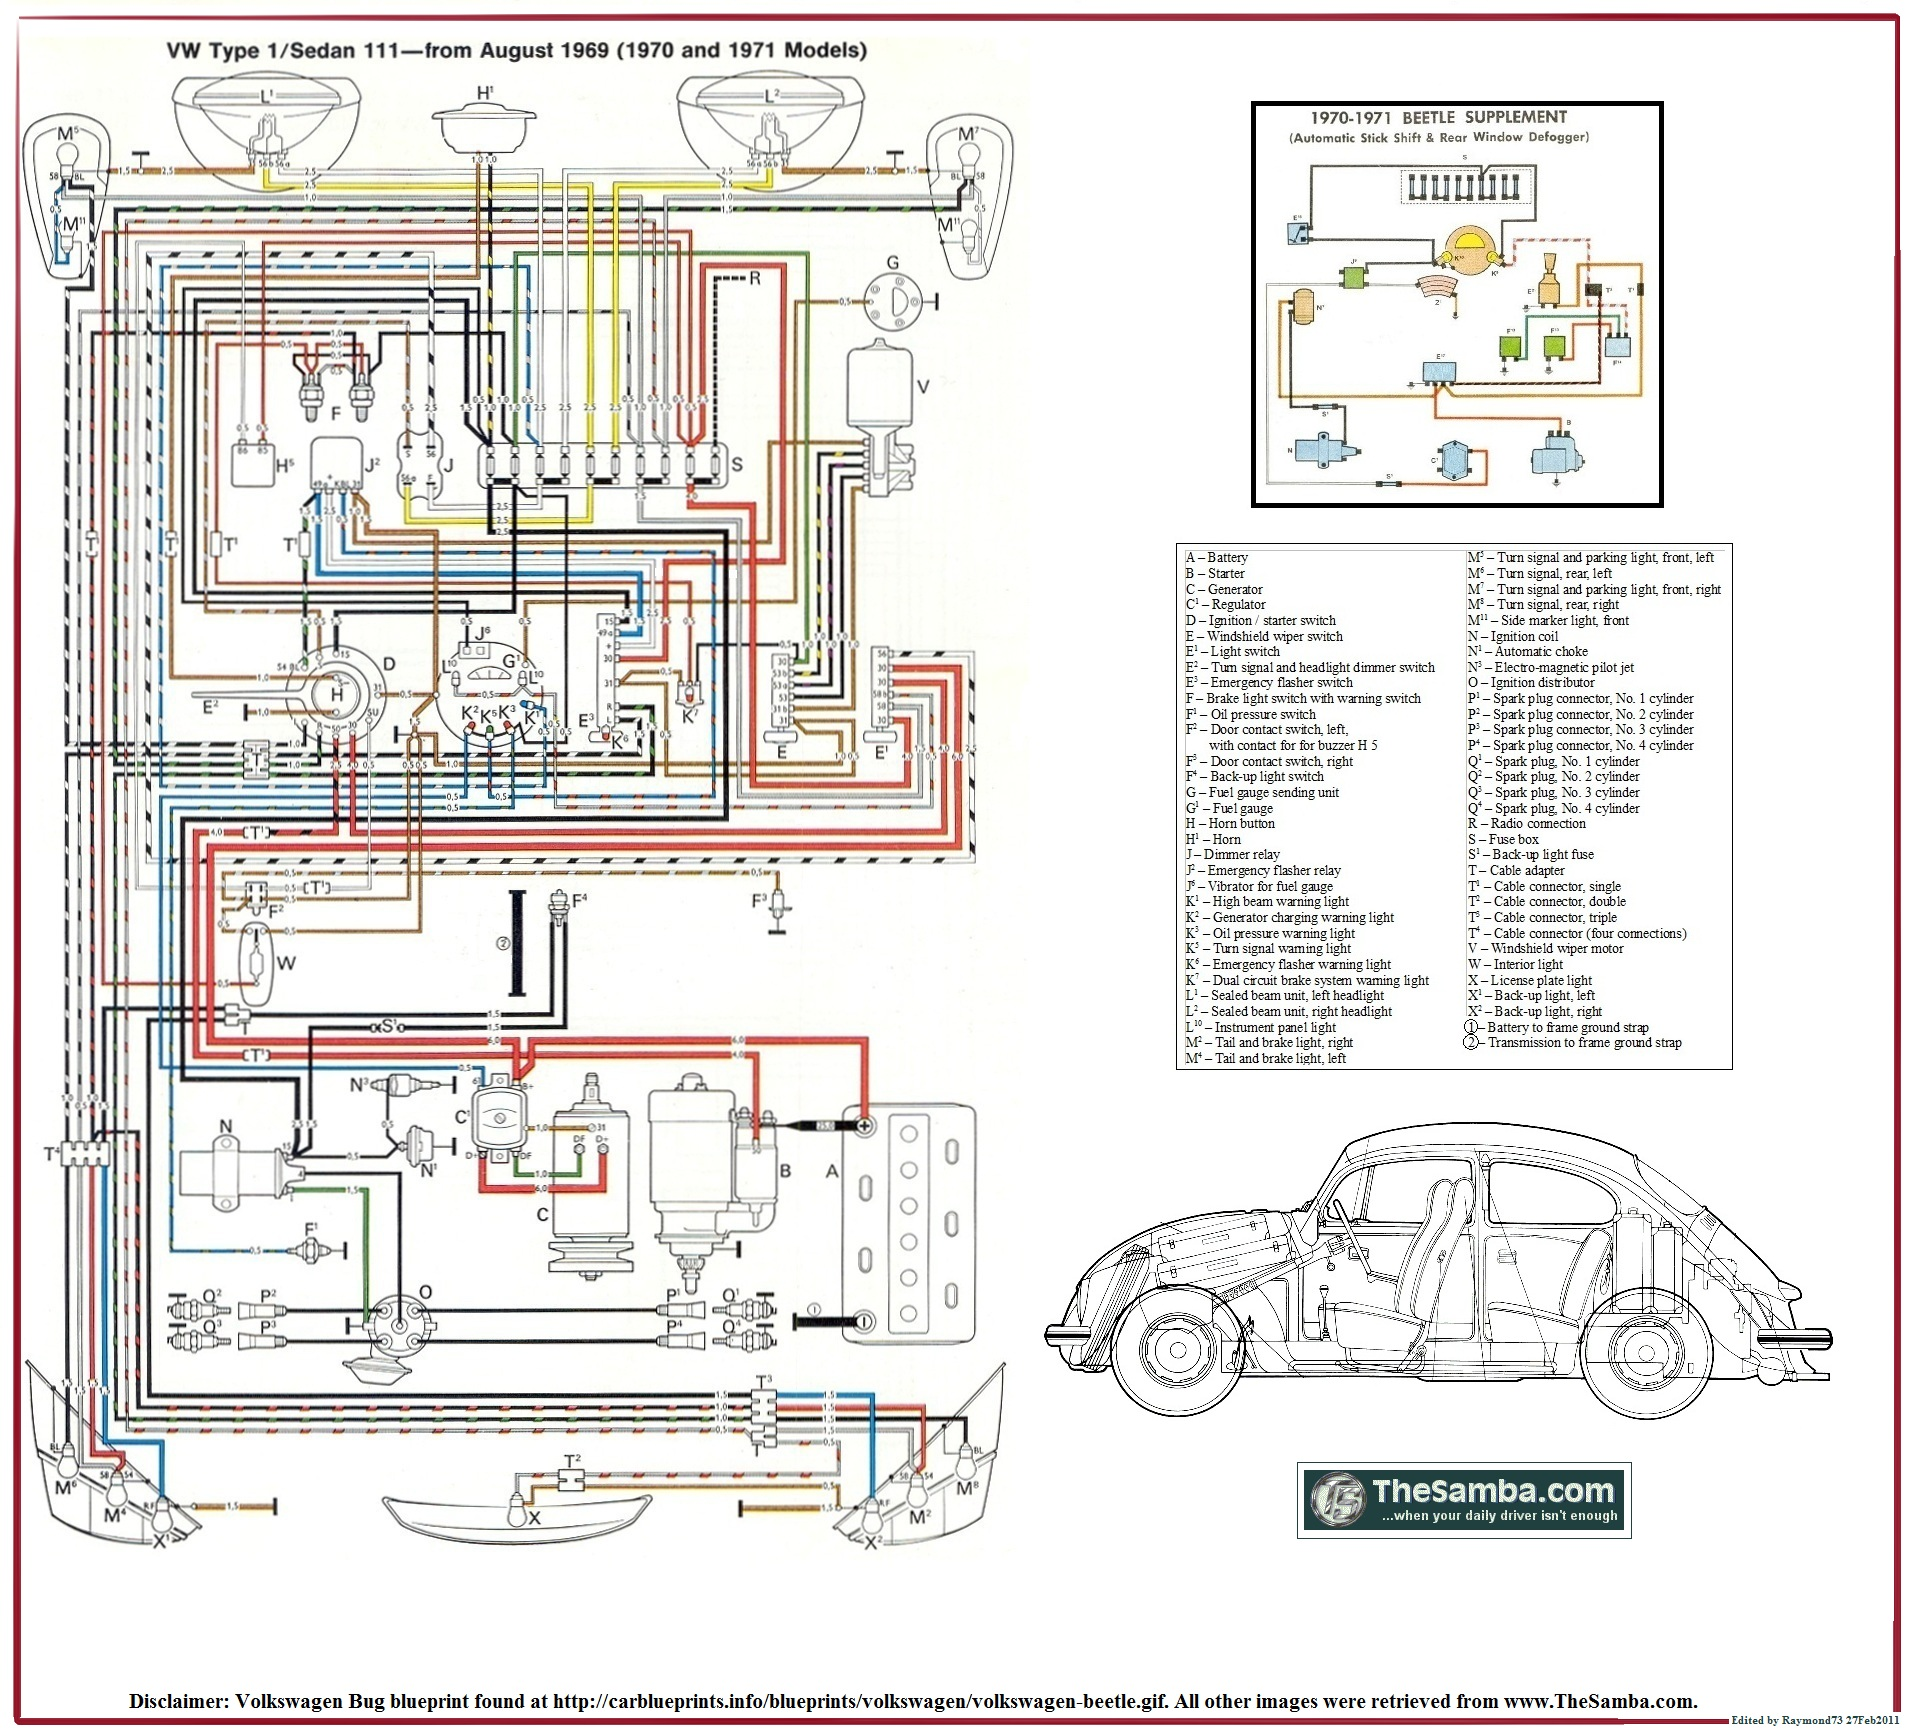 1970_VW_Type_1_Poster thesamba com beetle late model super 1968 up view topic vw bug wiring diagram at soozxer.org